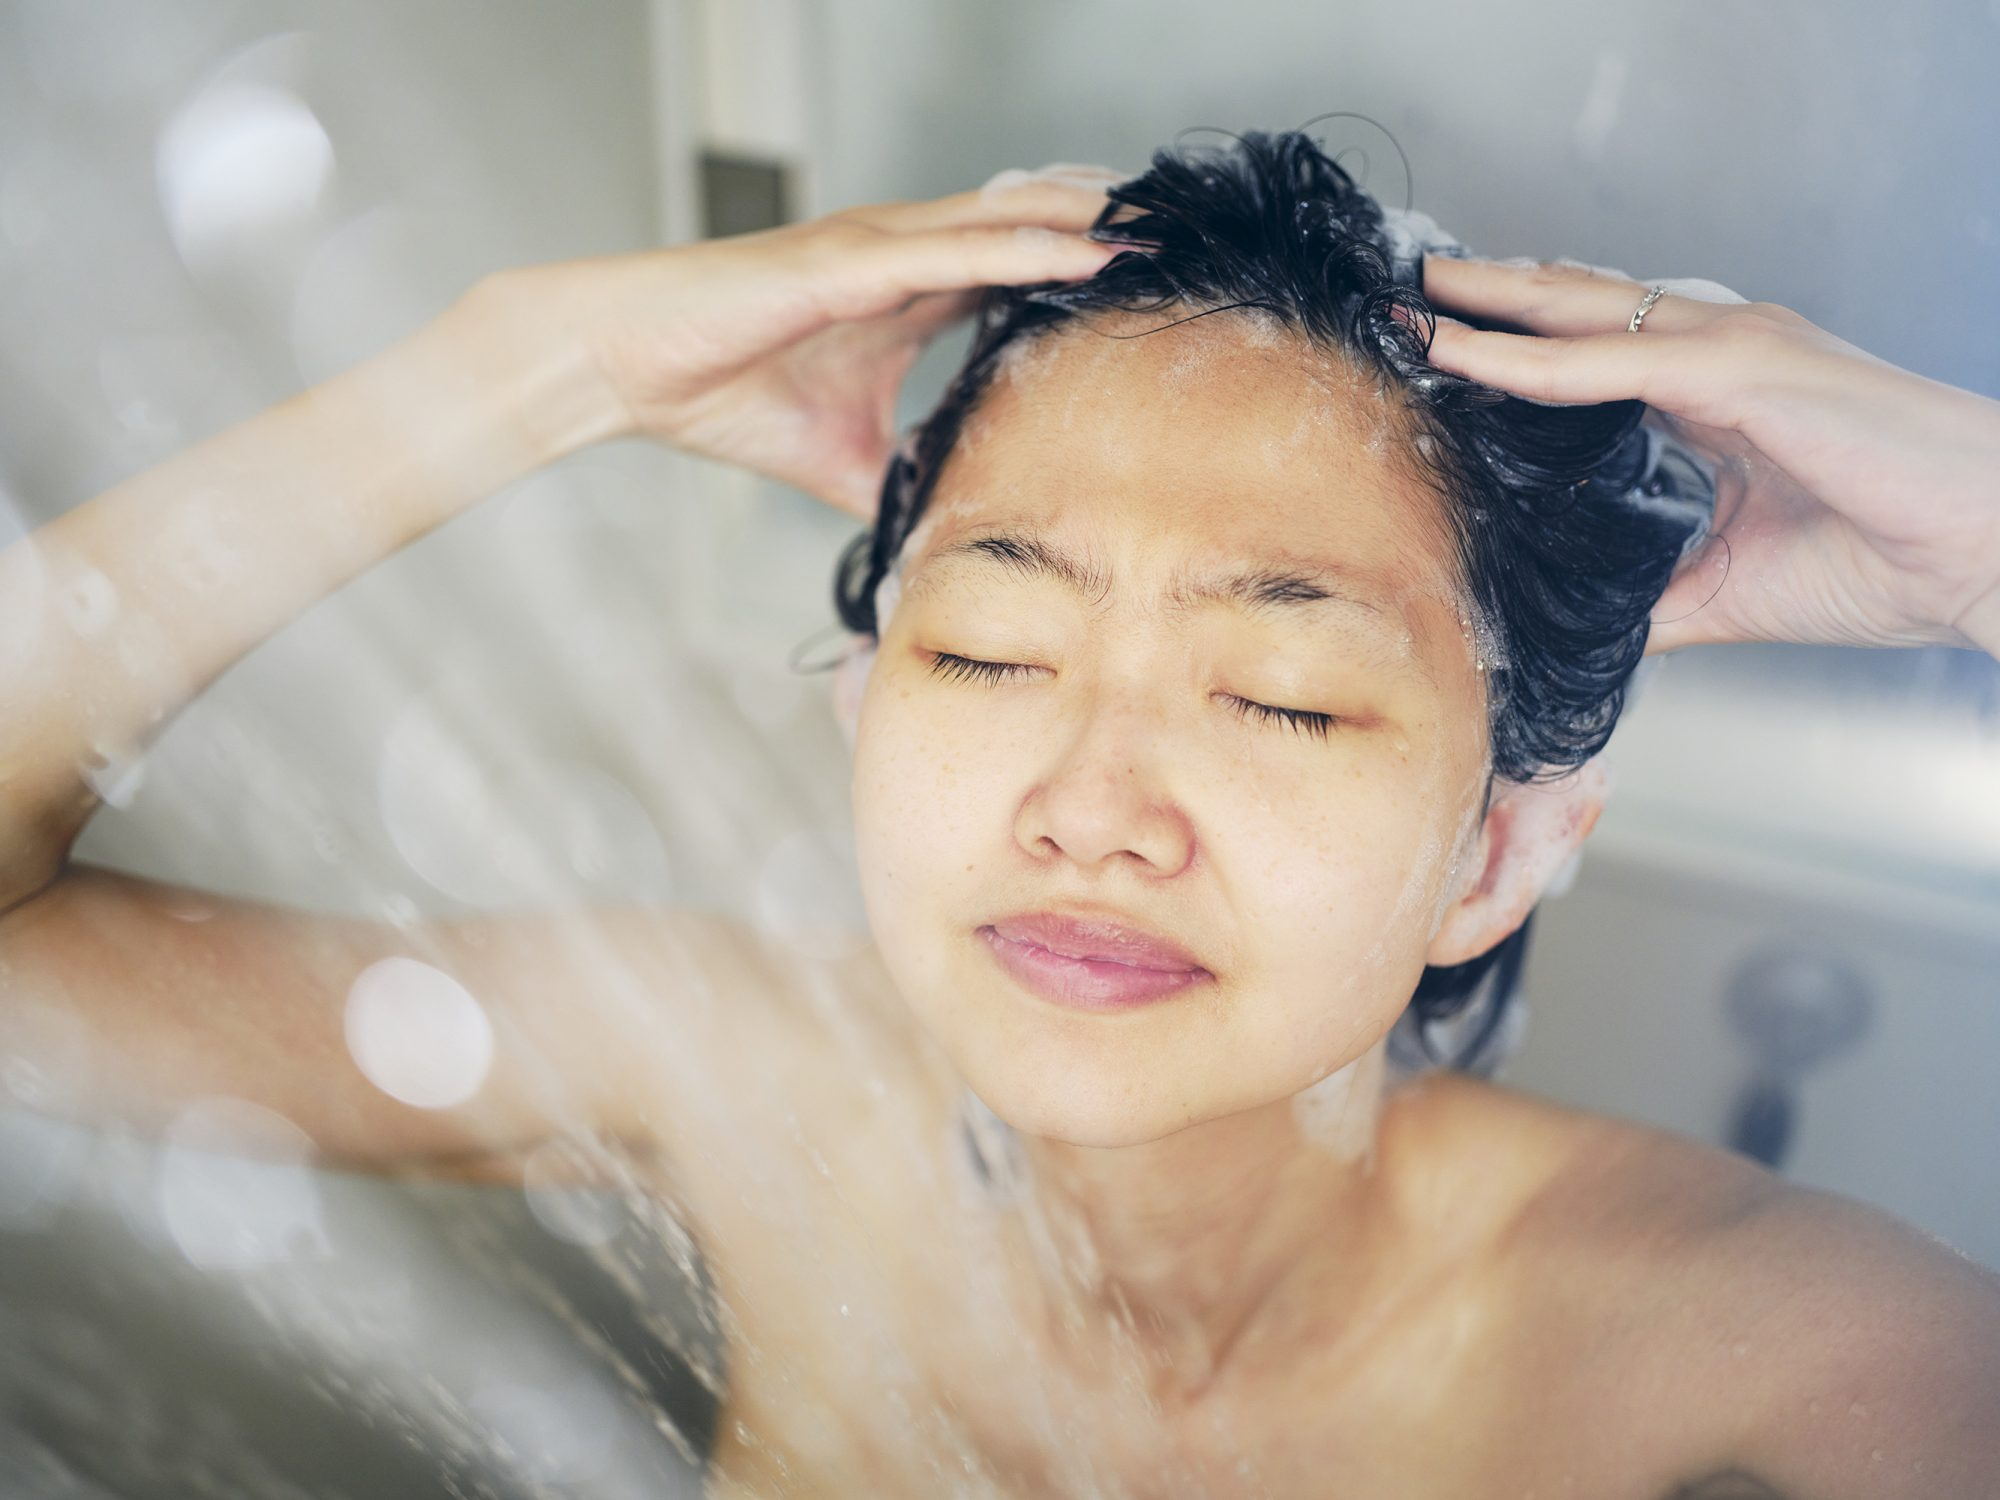 do-2-in-1-haircare-products-work: woman washing hair in shower